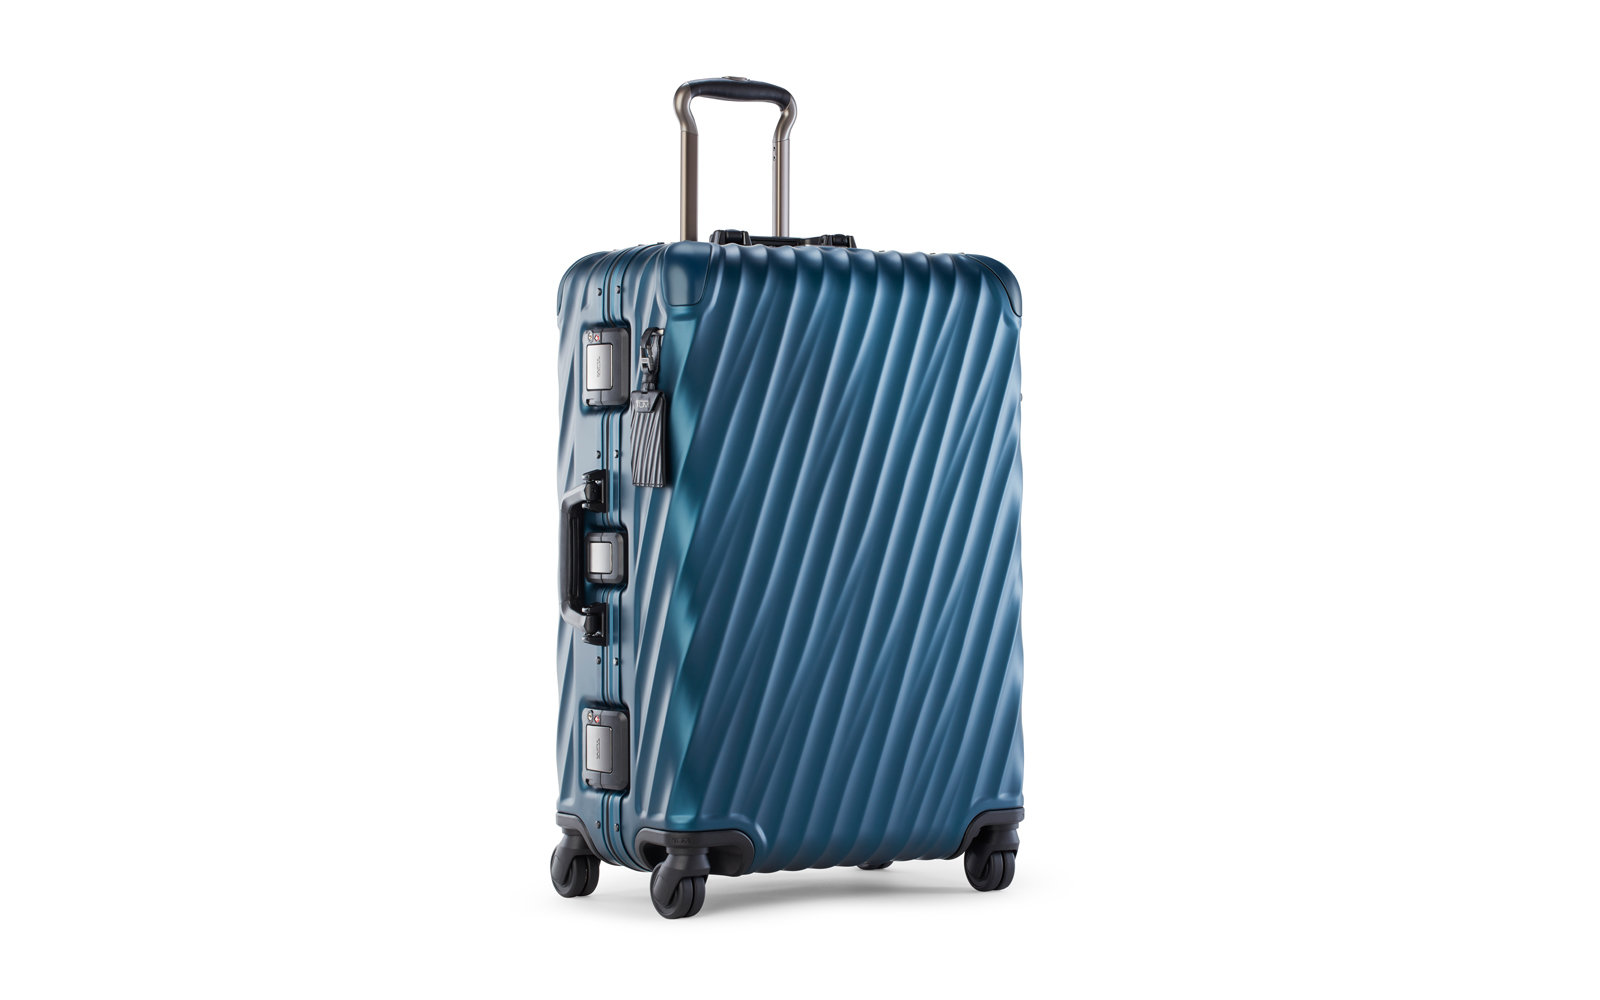 Tumi 19 Degree Checked Luggage